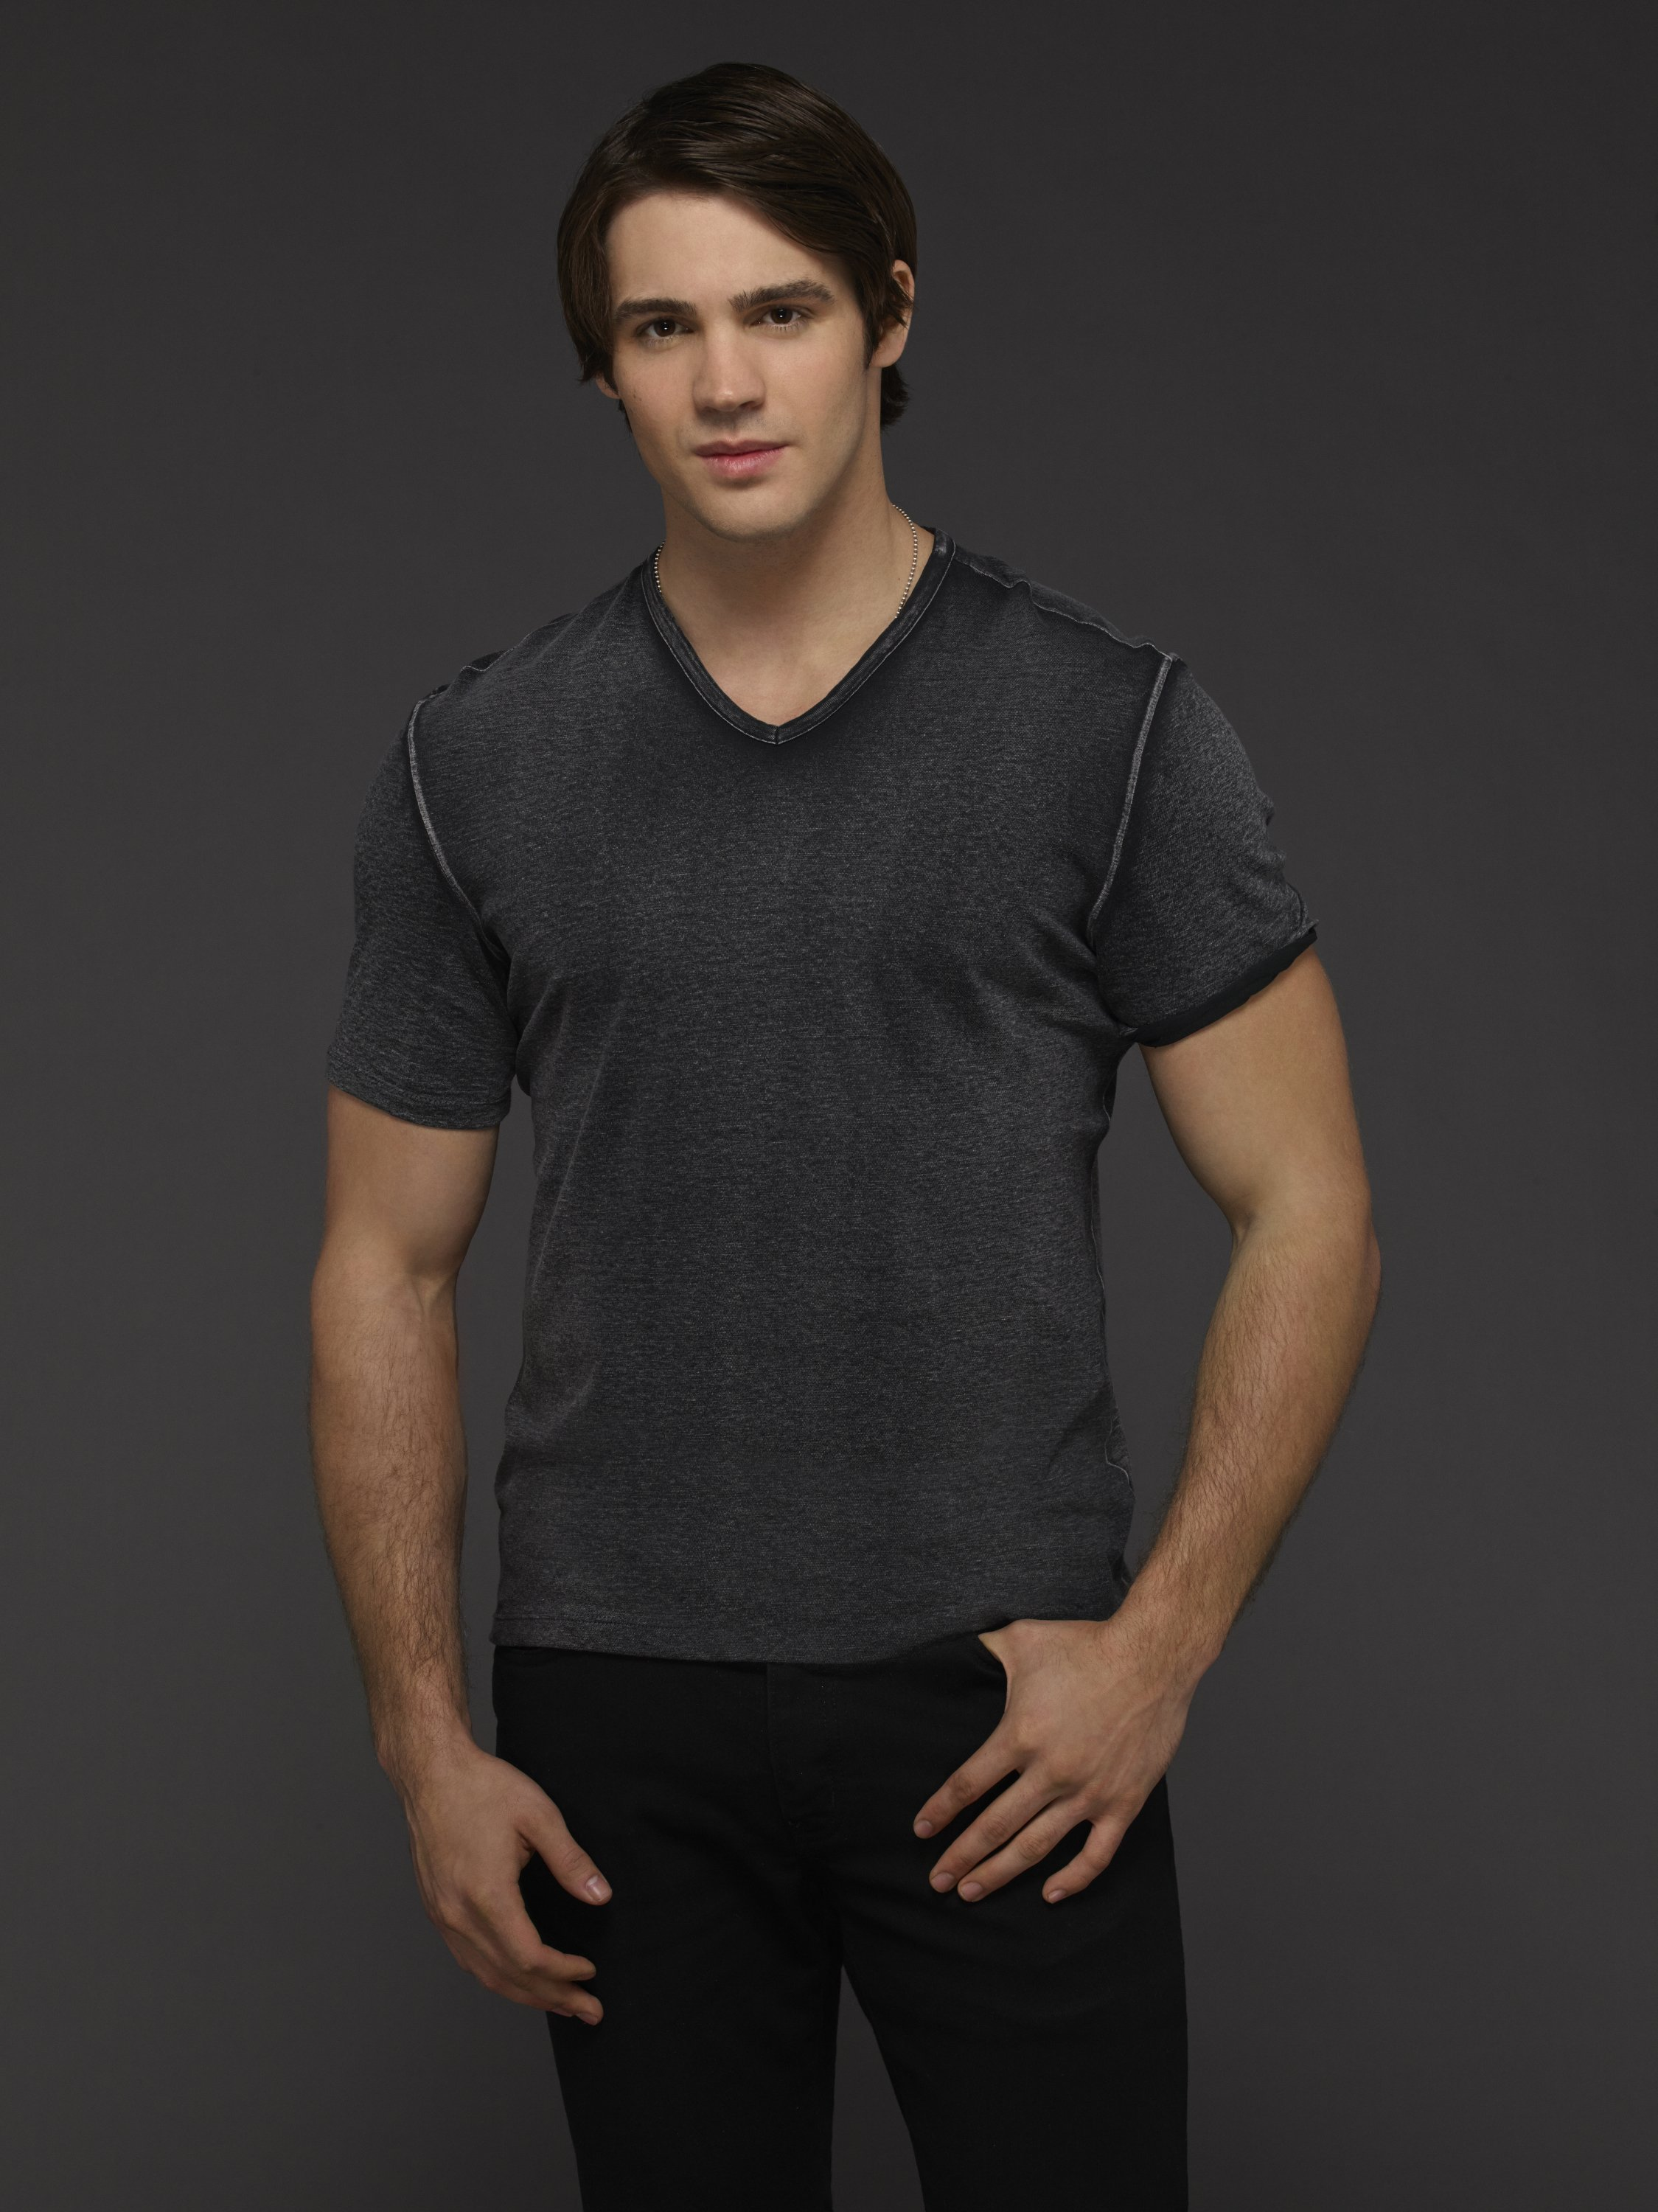 The Vampire Diaries images Jeremy Gilbert season 6 ...